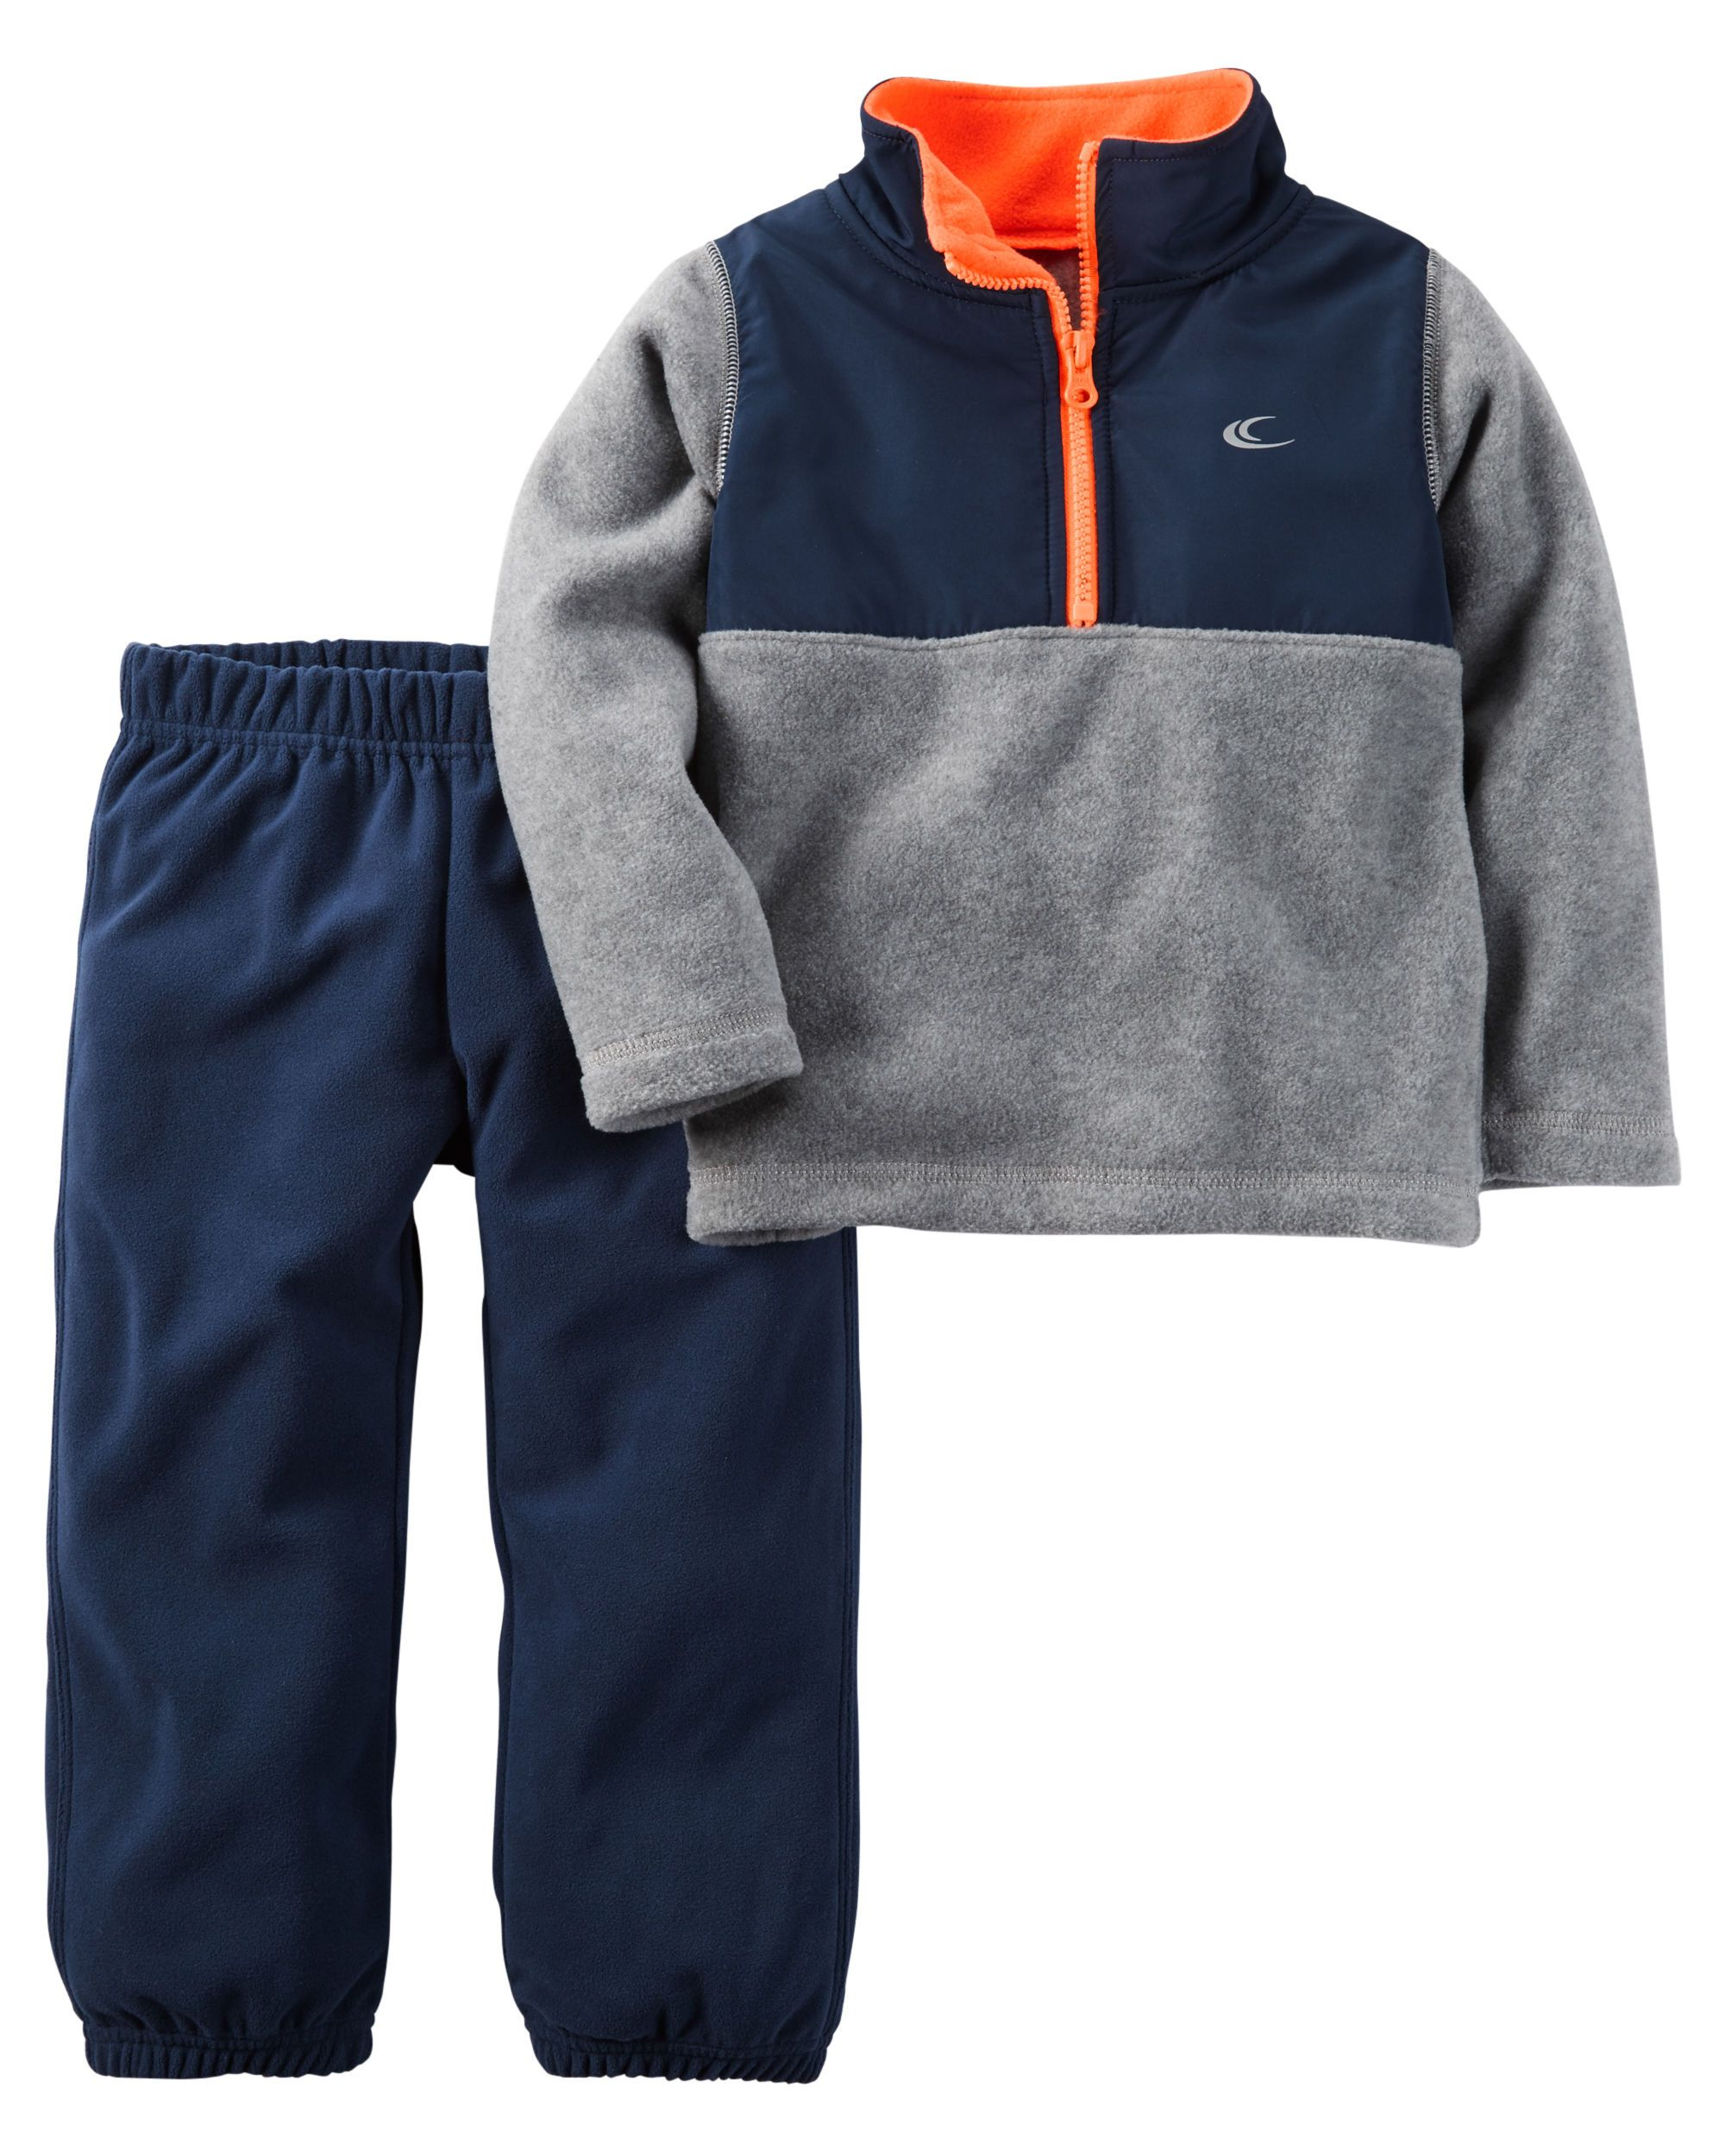 2-Piece Half-Zip Fleece Pullover & Pant Set | Babies clothes ...